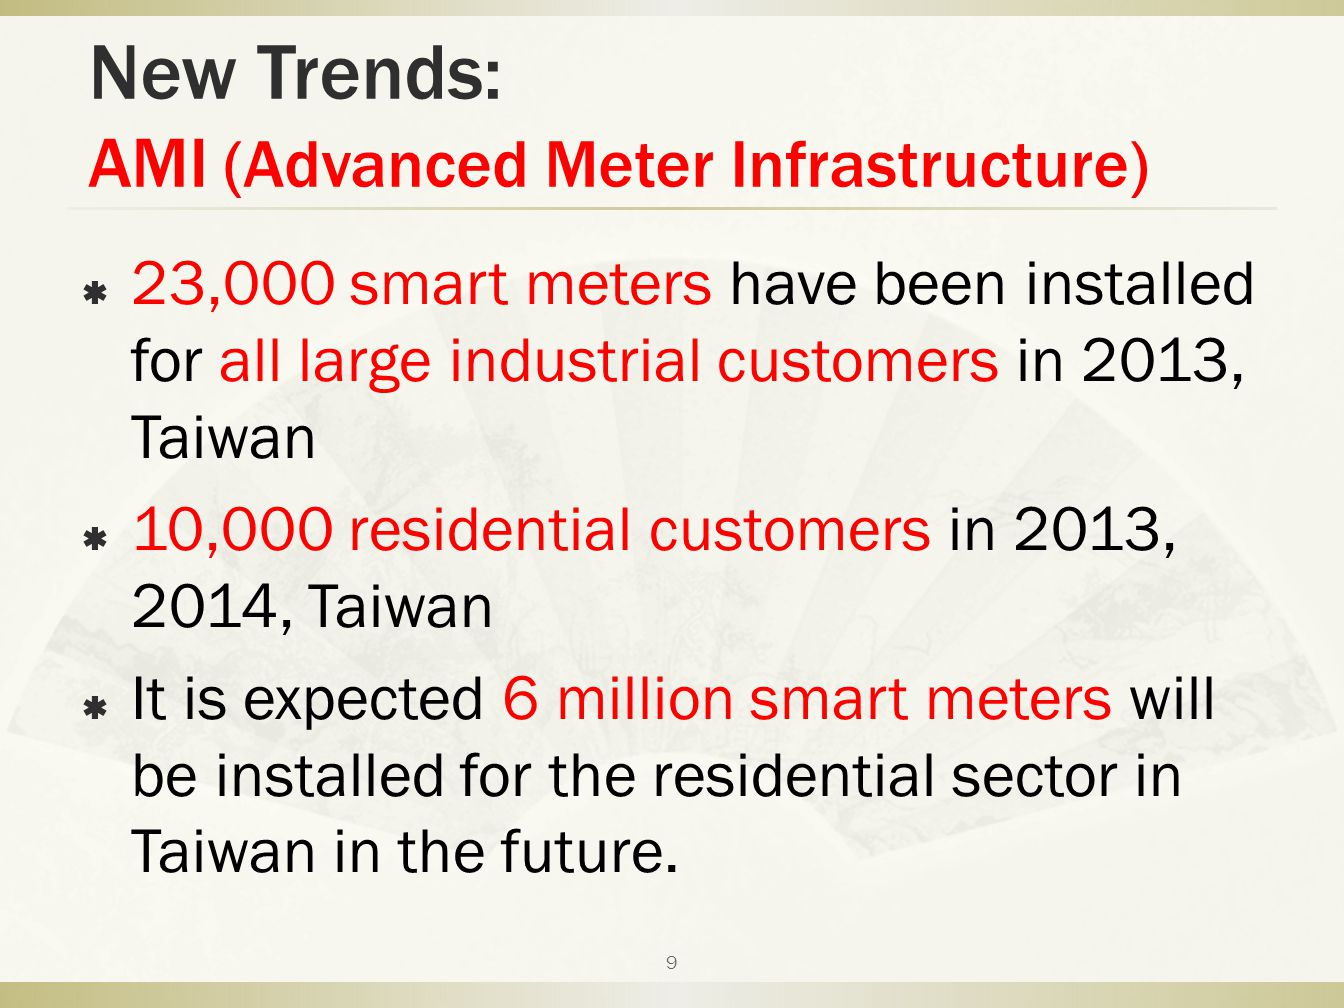 New Trends: AMI (Advanced Meter Infrastructure)  23,000 smart meters have been installed for all large industrial customers in 2013, Taiwan  10,000 residential customers in 2013, 2014, Taiwan  It is expected 6 million smart meters will be installed for the residential sector in Taiwan in the future.